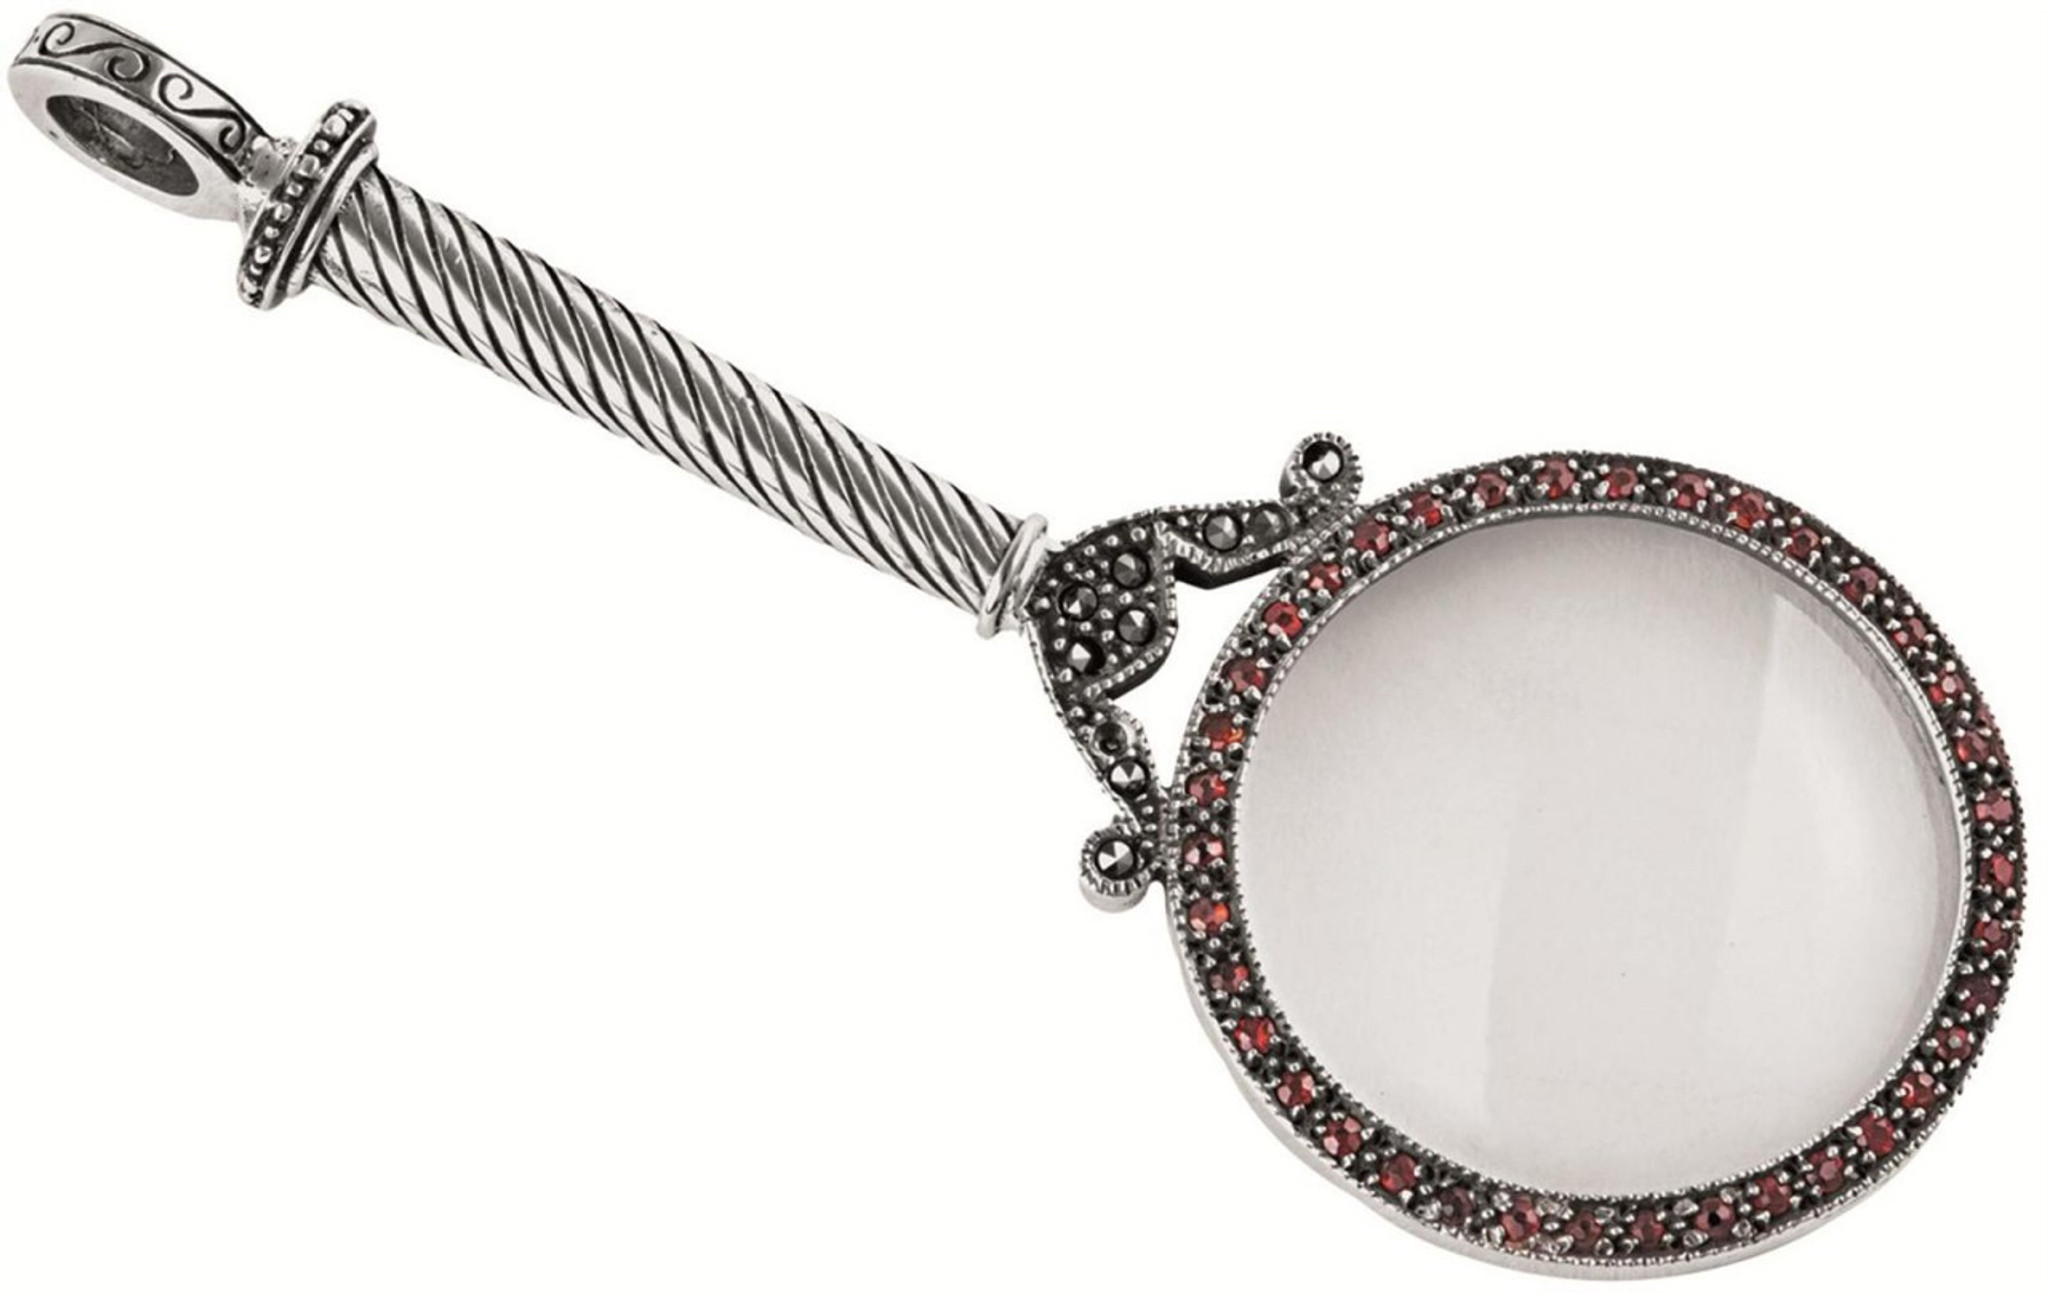 Antique finished marcasite and garnet set magnifying glass pendant antique finished marcasite and garnet set magnifying glass pendant magnification x 6 aloadofball Image collections